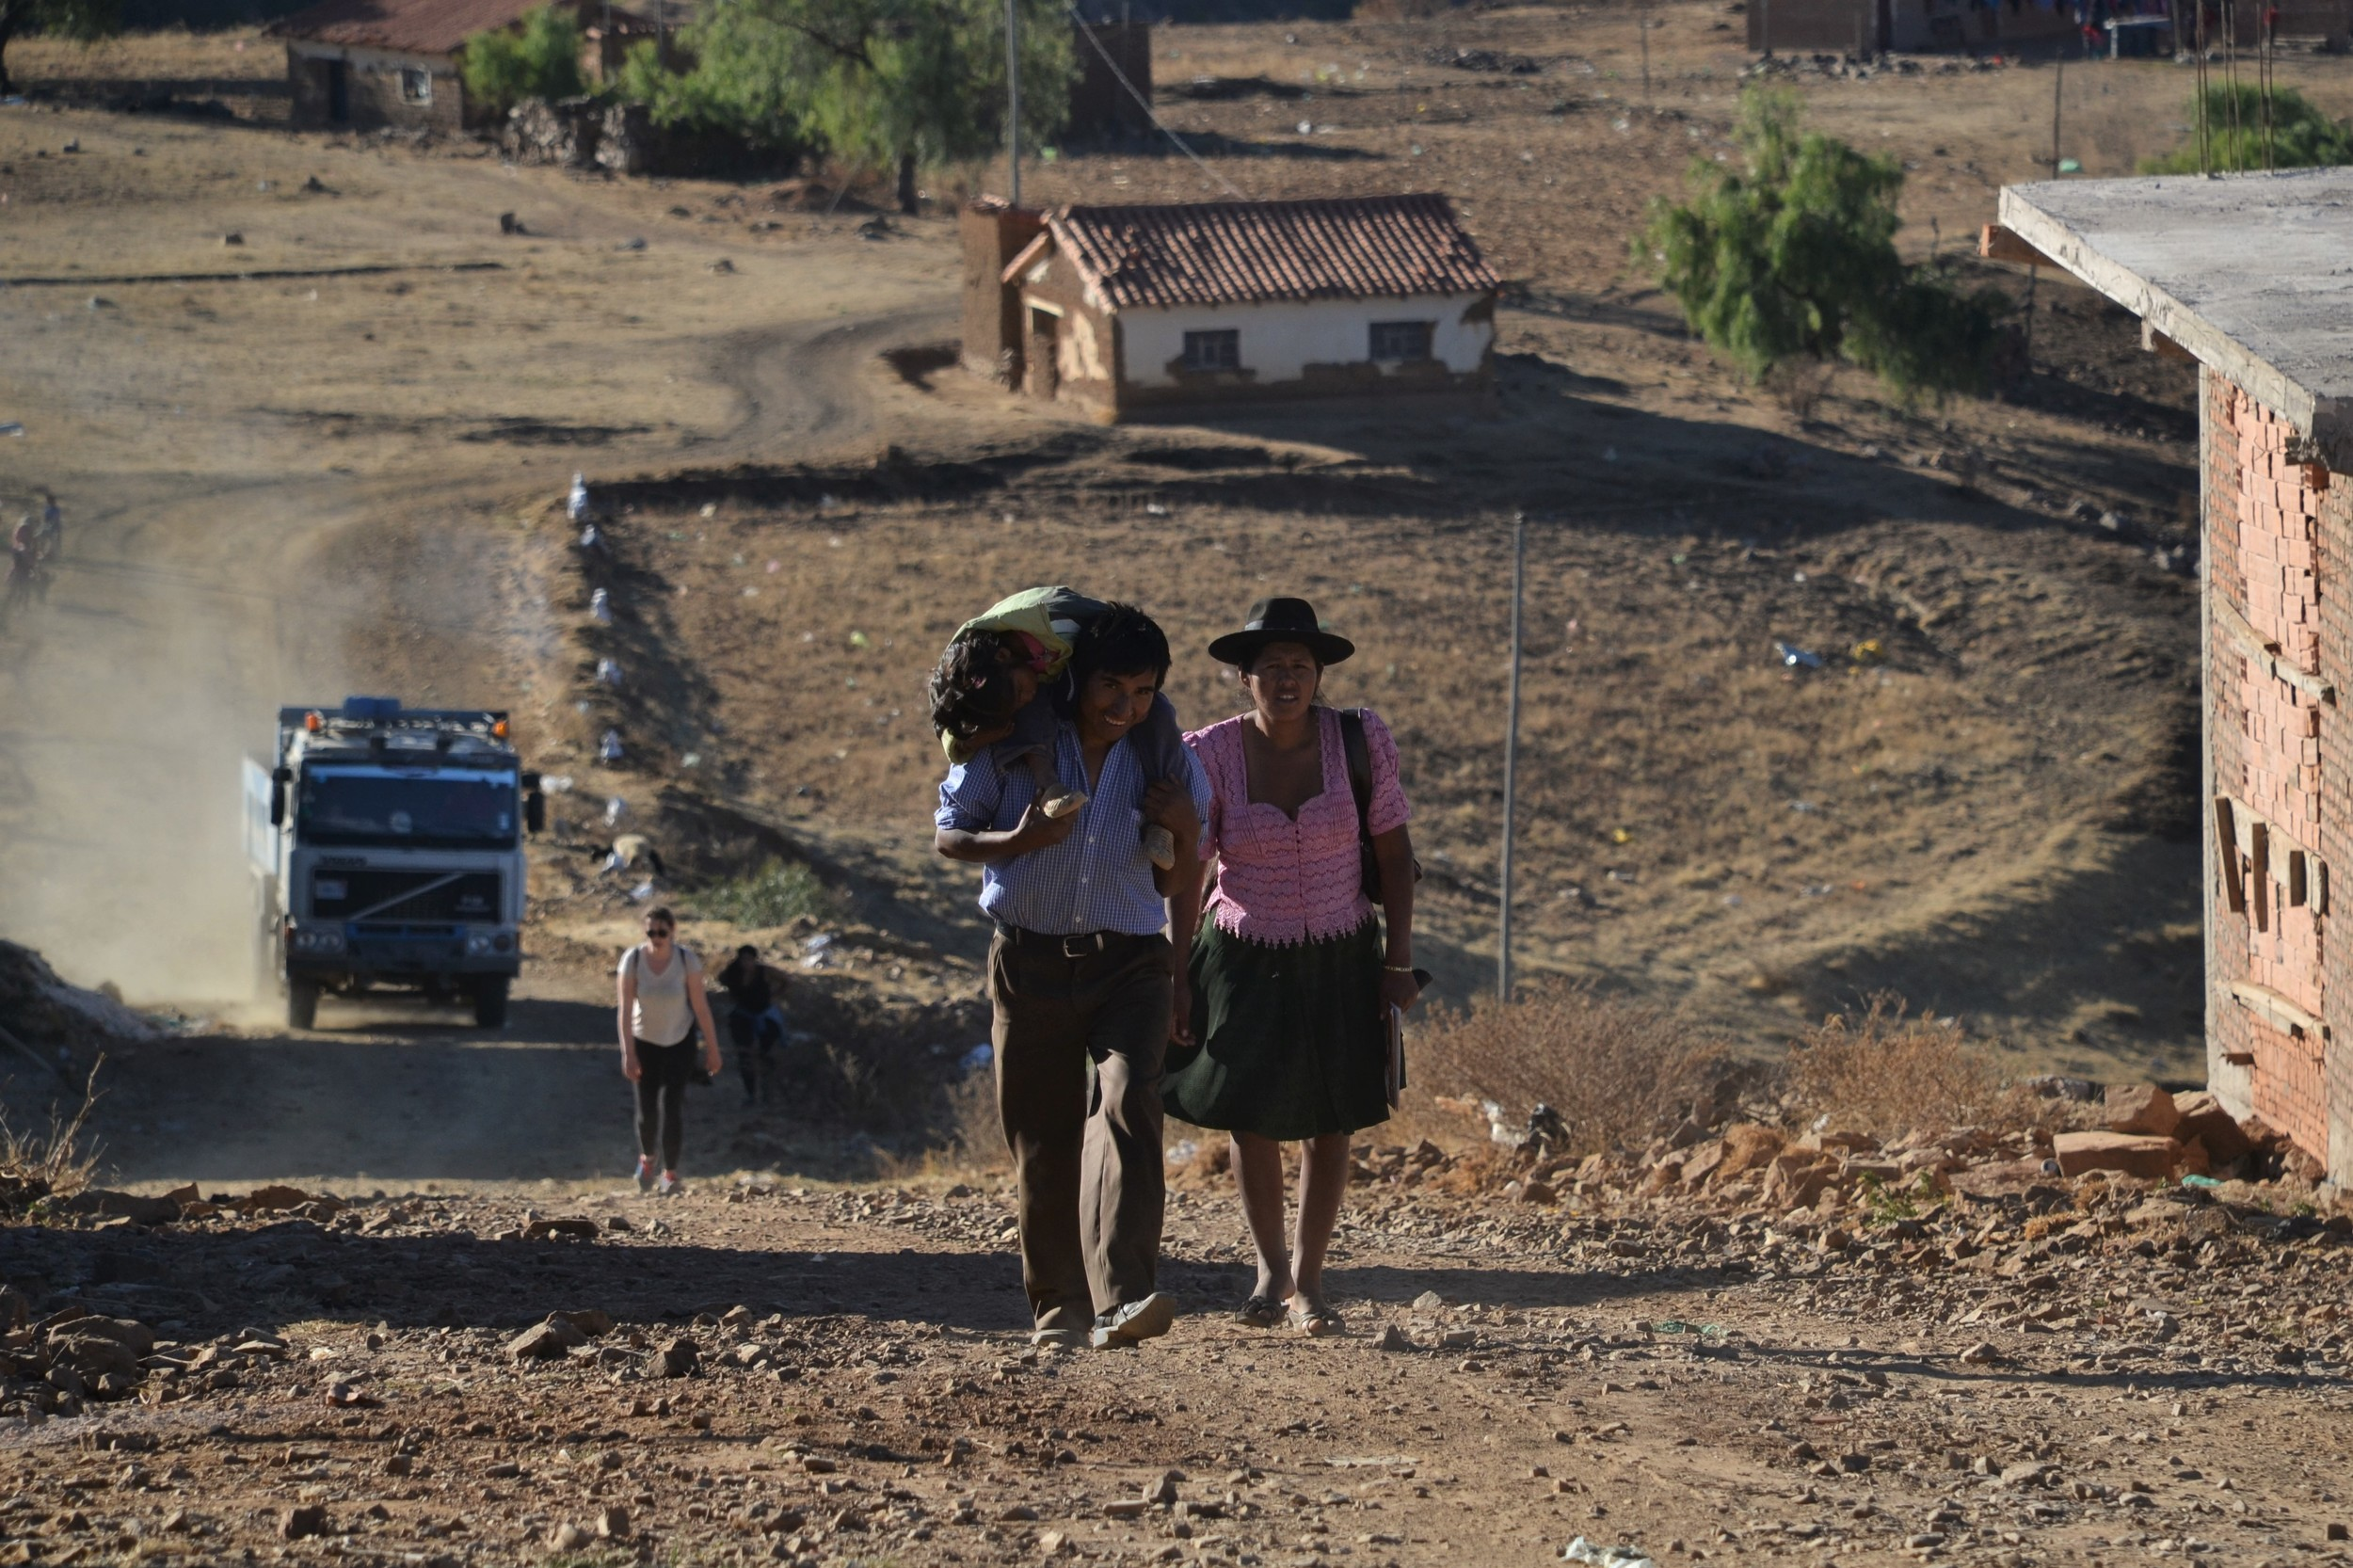 A family in a small Bolivian town.